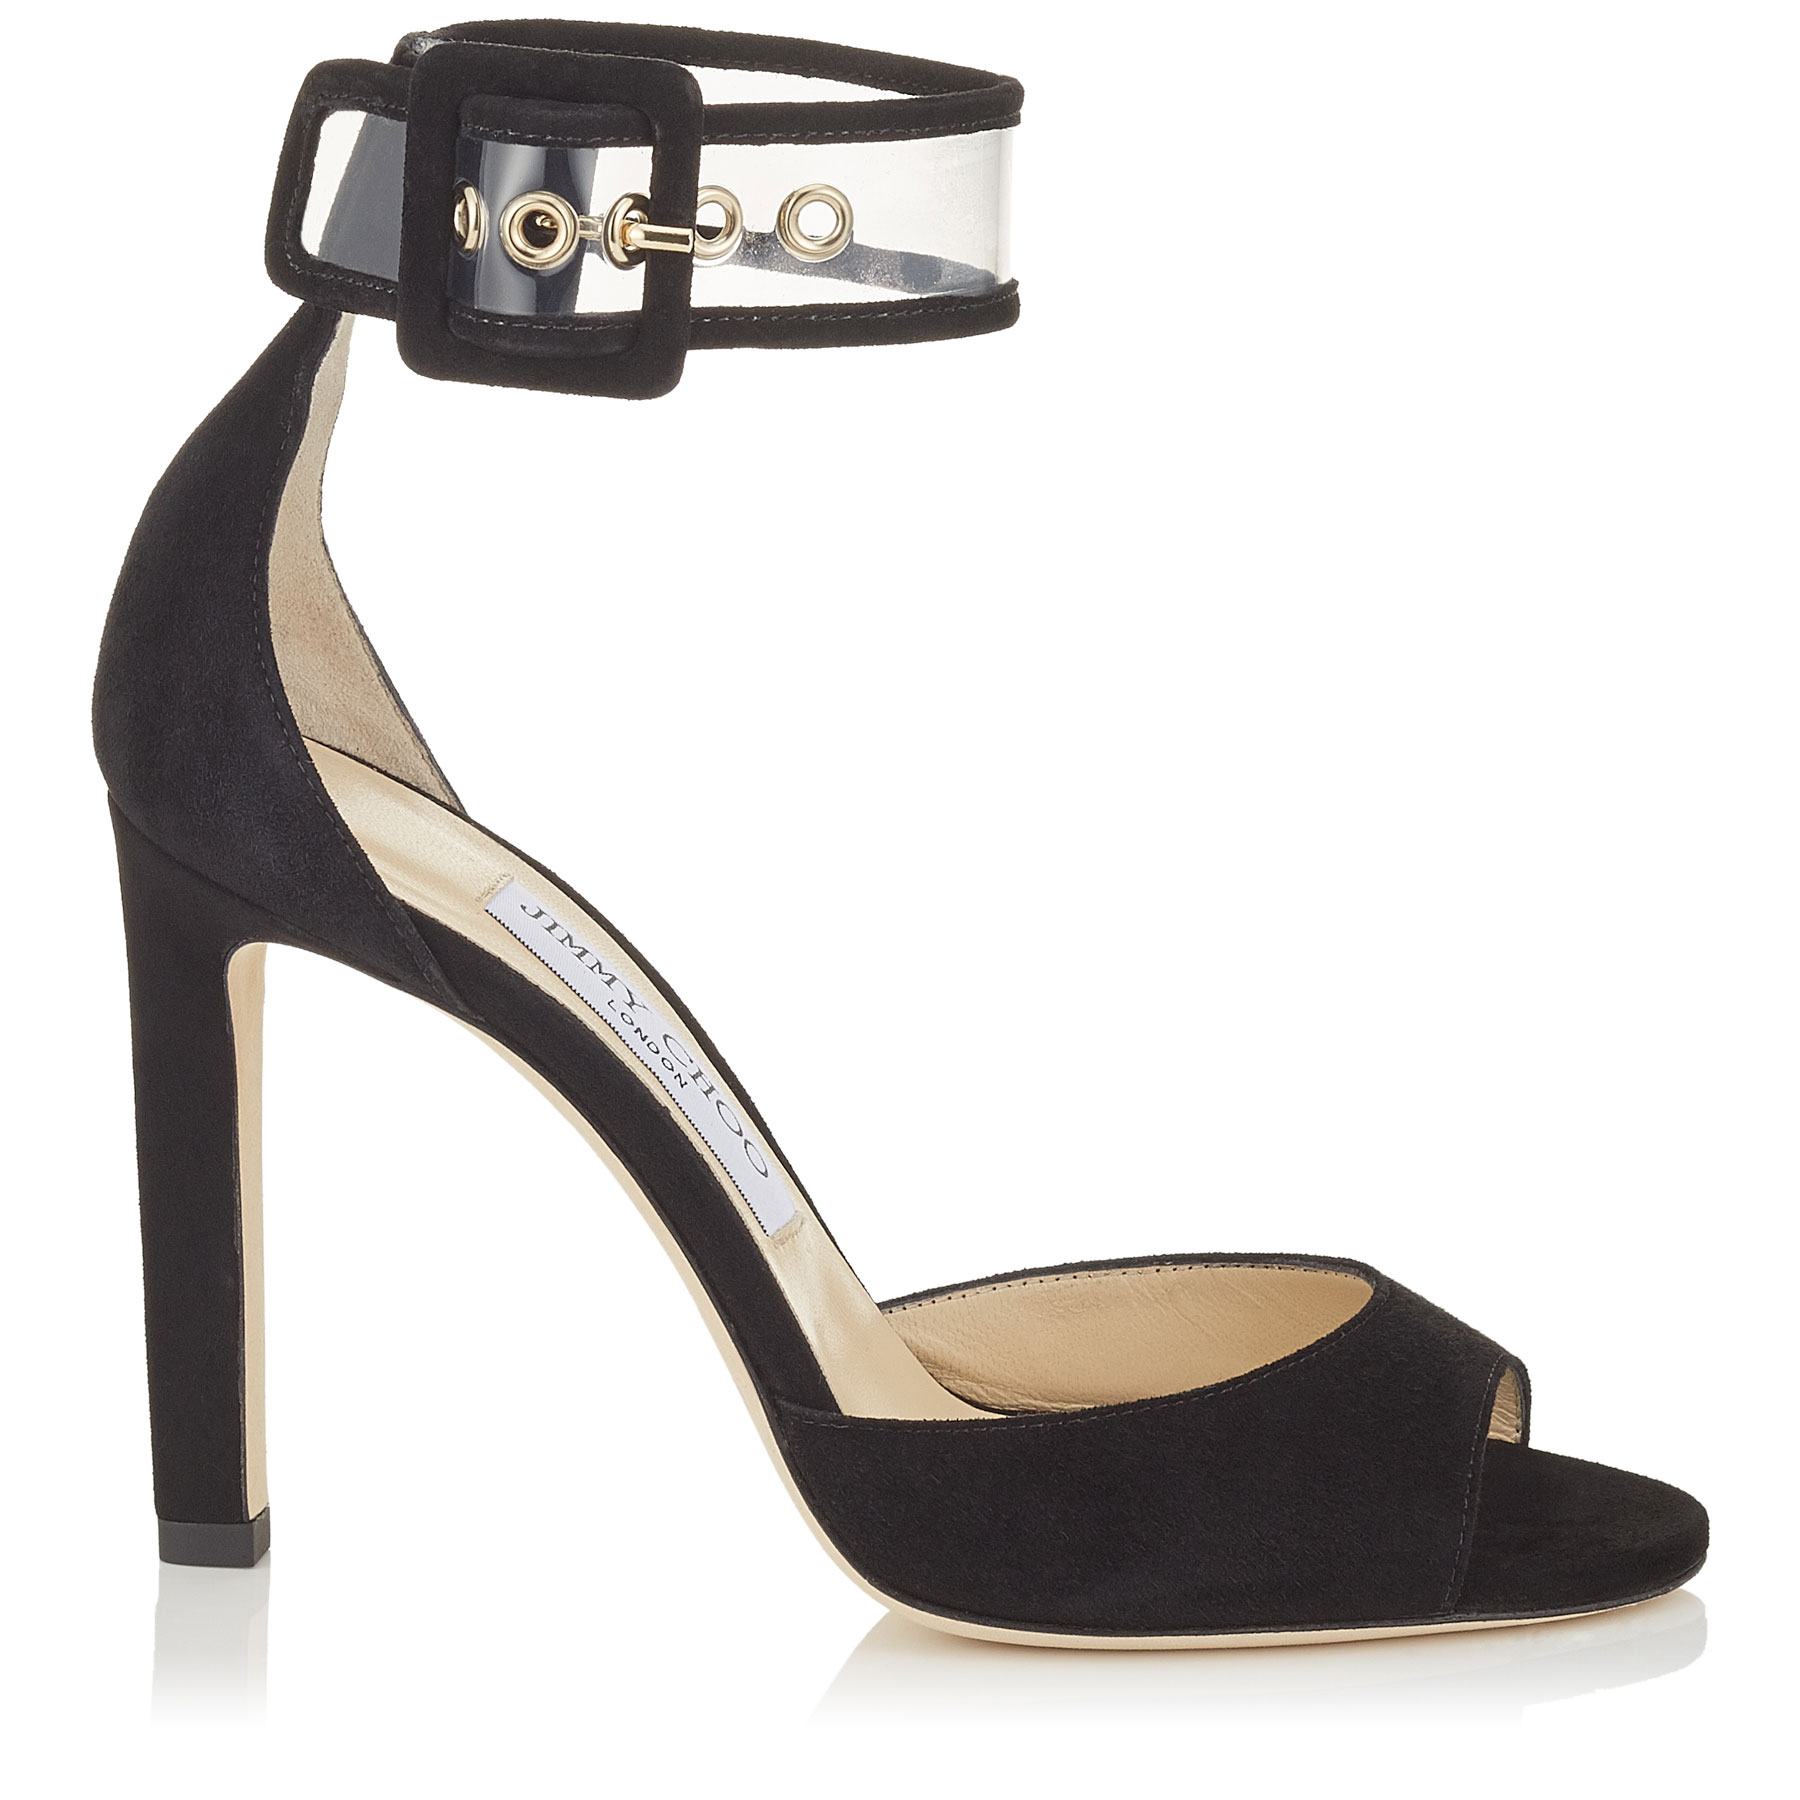 MOSCOW 100 Black Suede with Plexi Ankle Strap Peep Toe Sandals